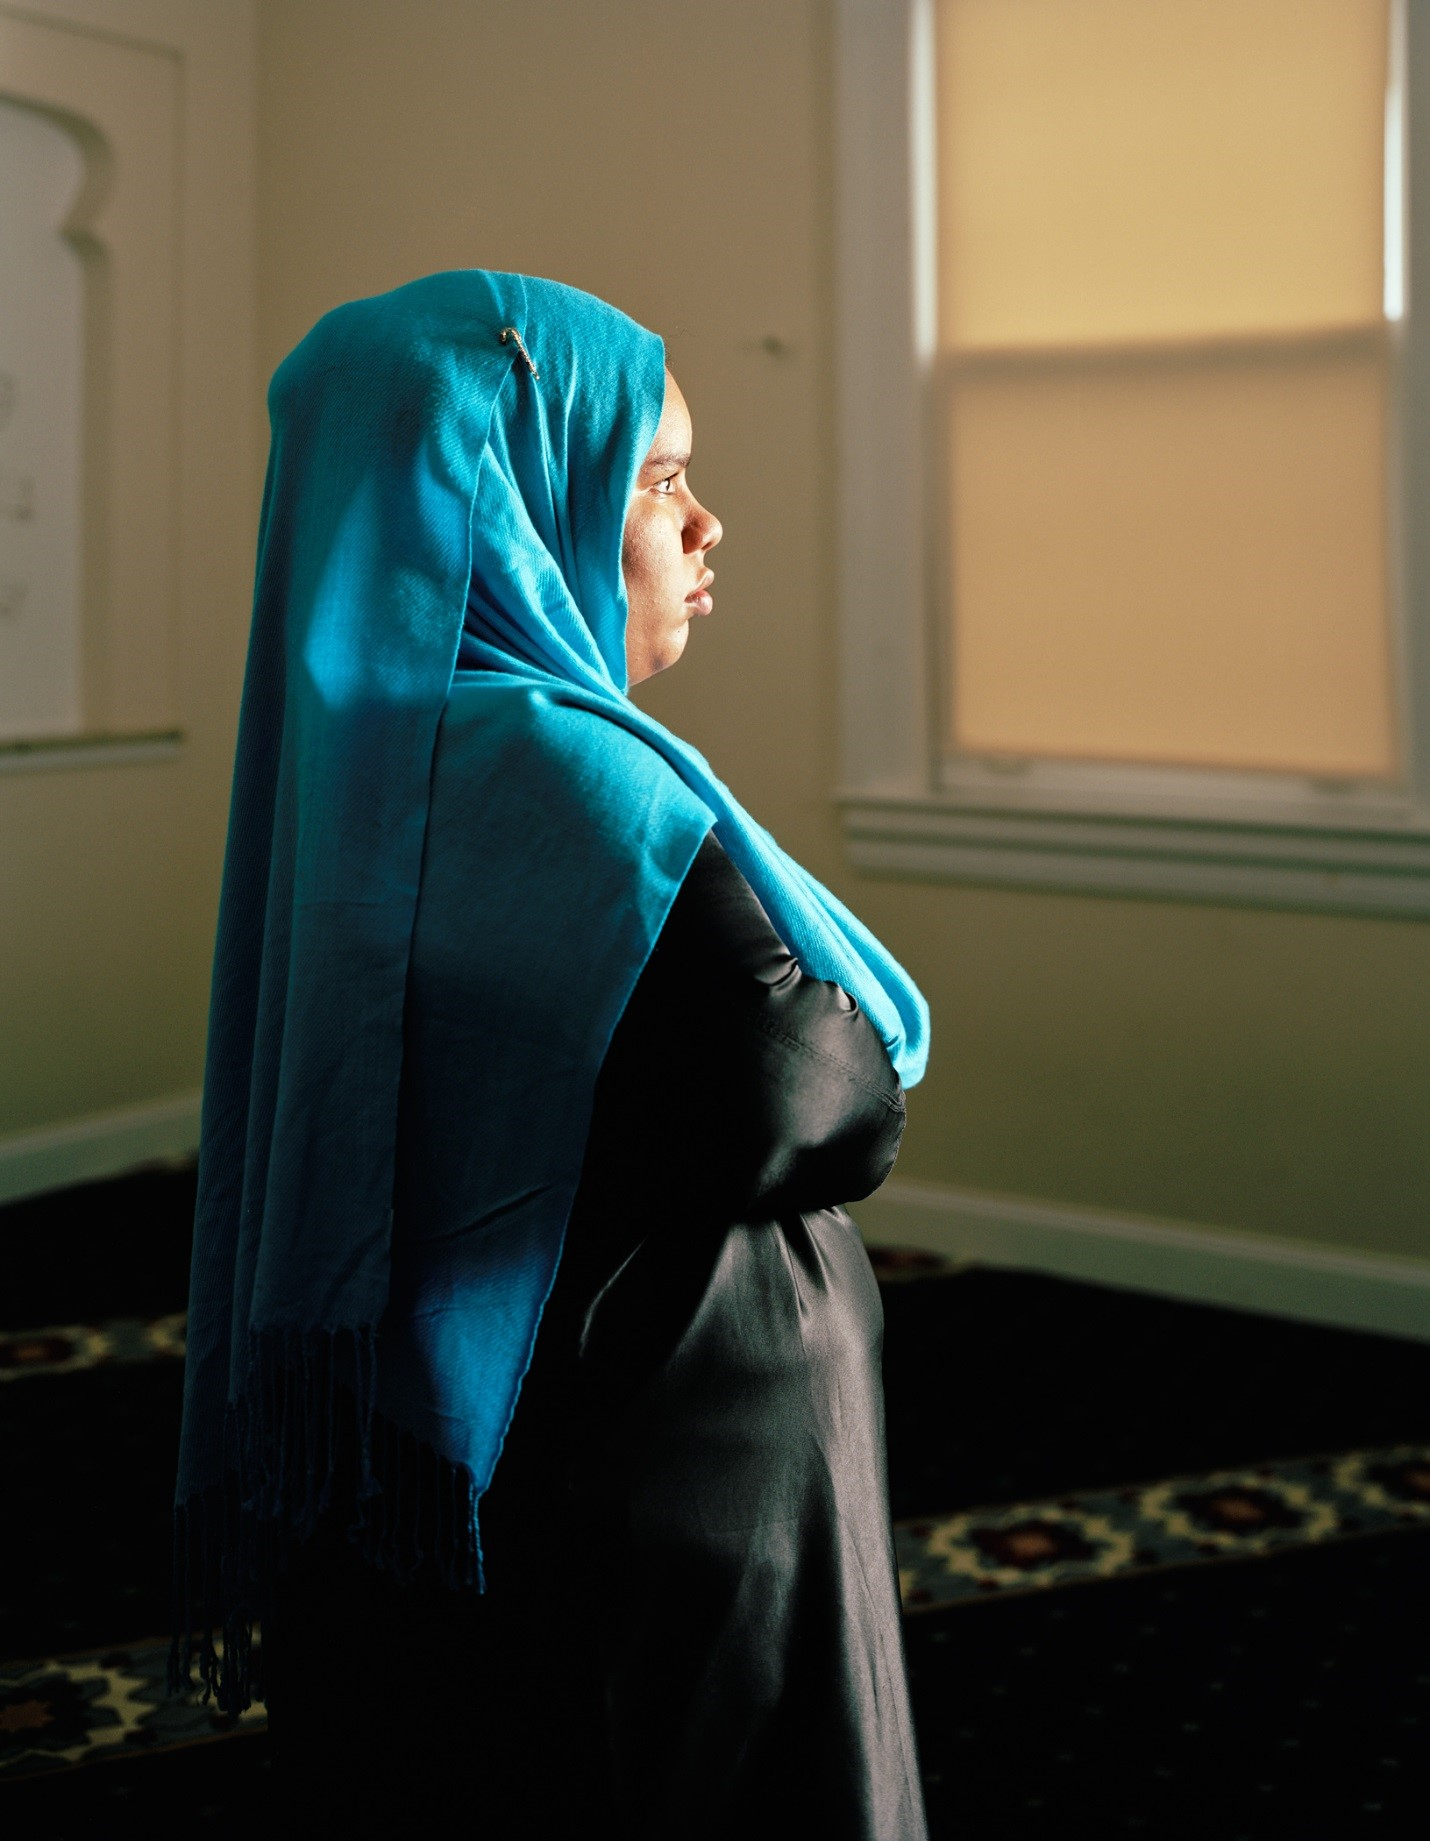 Woman in blue head scarf looking towards window